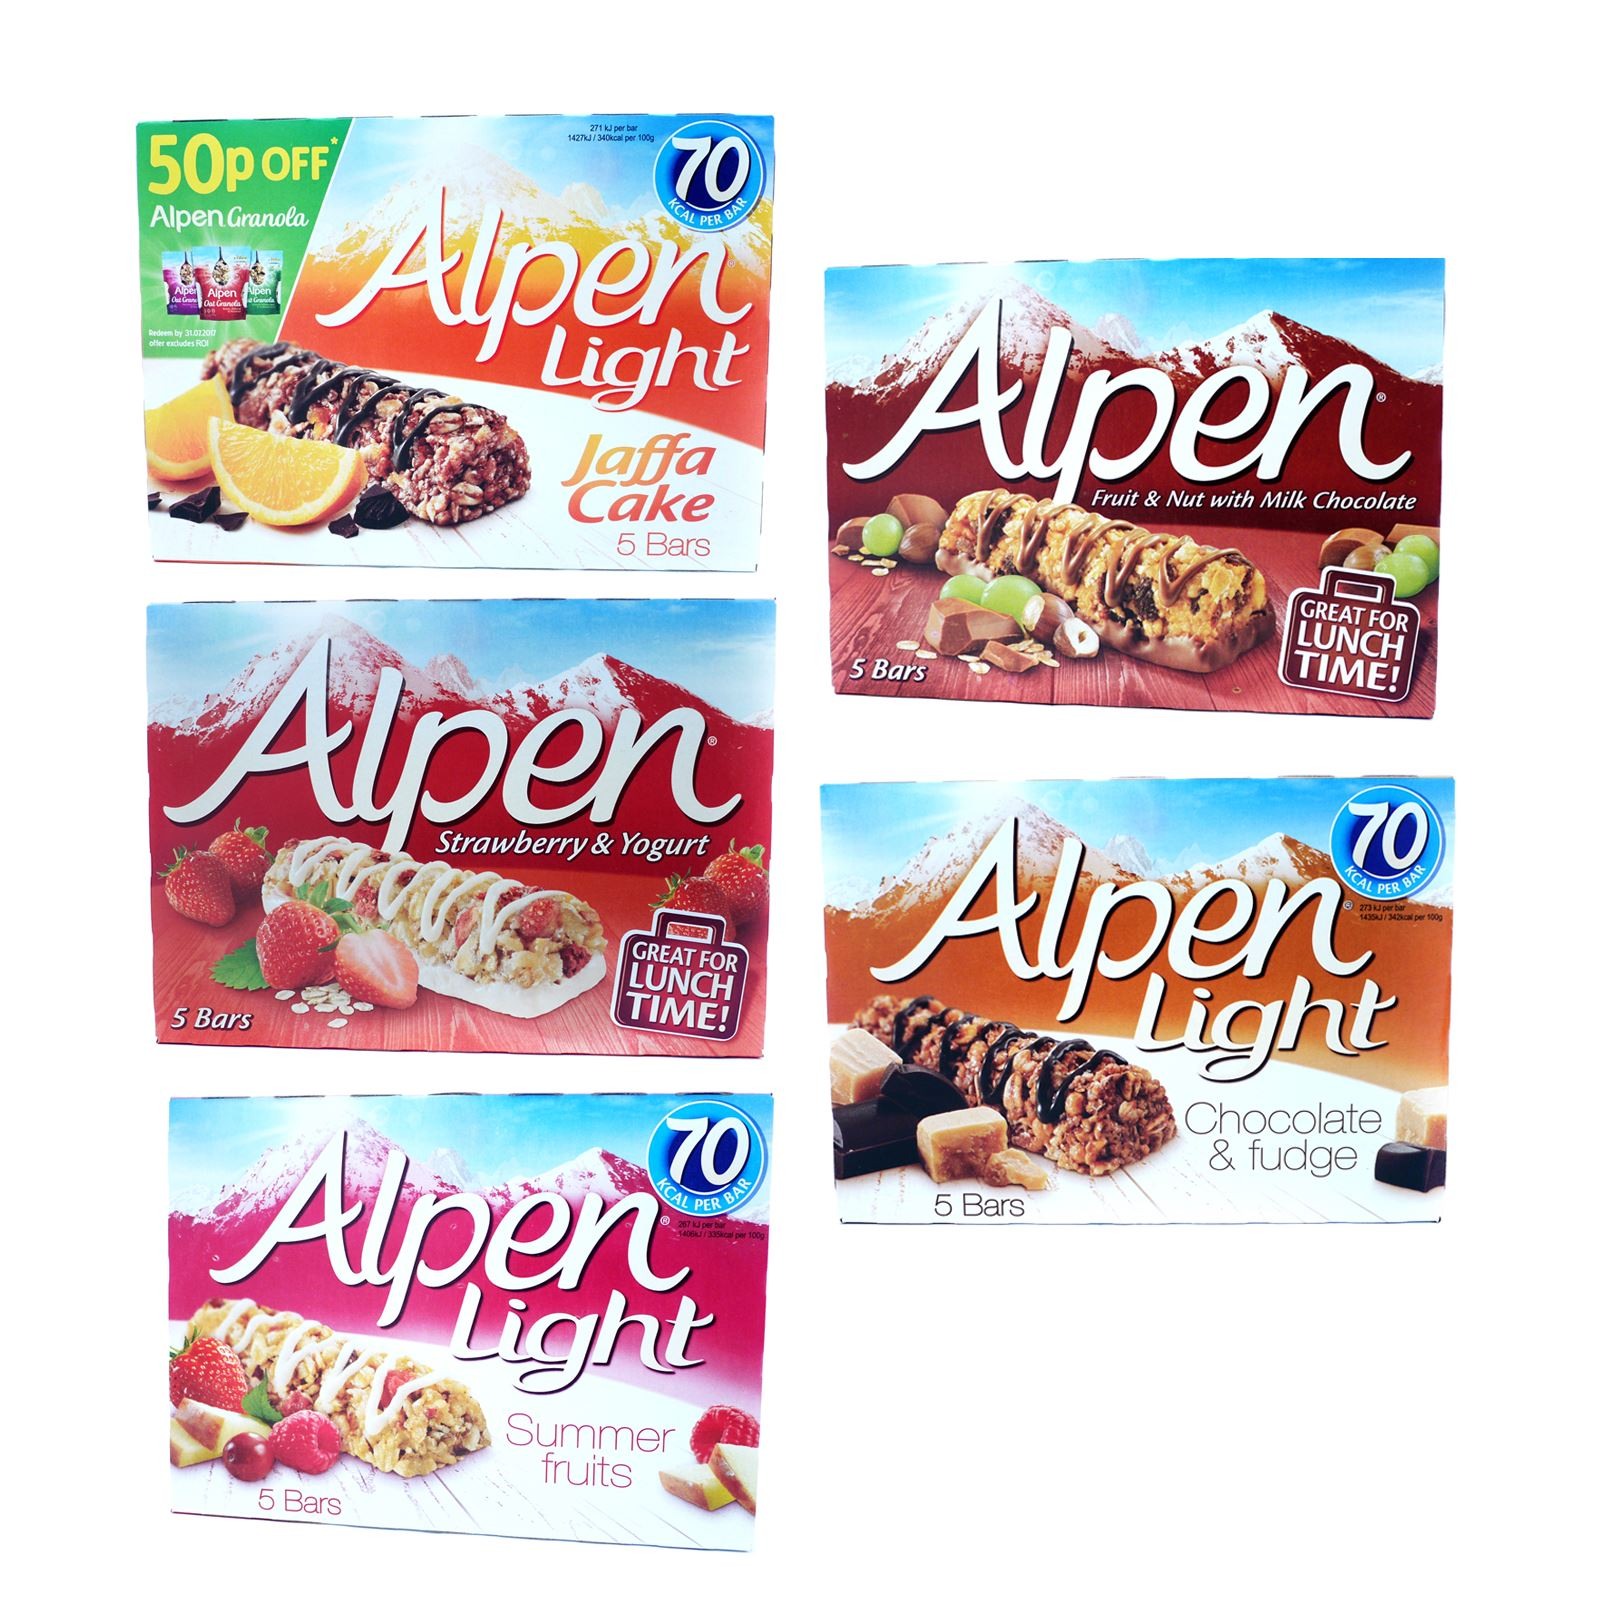 Alpen light jaffa cake fruit cereal bar chocolate snack 10 boxes of alpen light jaffa cake fruit cereal bar chocolate snack 10 boxes of 5 50 bars aloadofball